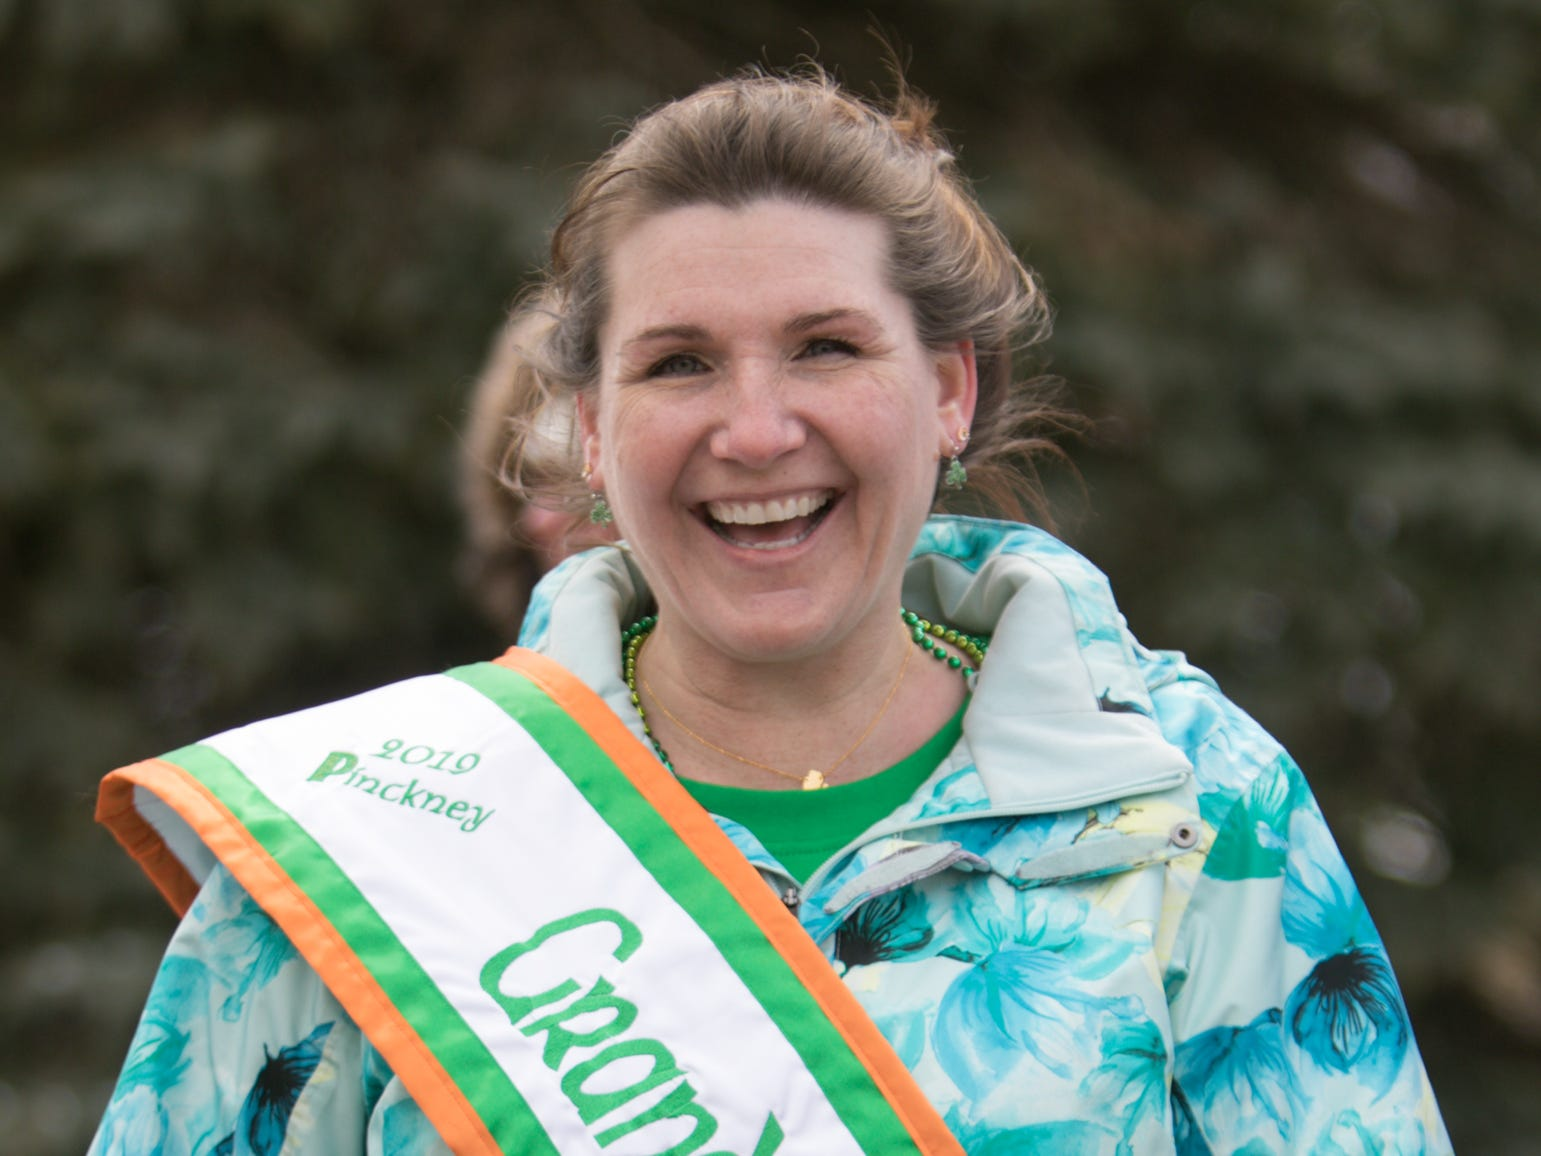 Michelle Brunner is the 2019 grand marshal of the Pinckney St. Patrick's Day parade, held Saturday, March 16, 2019.